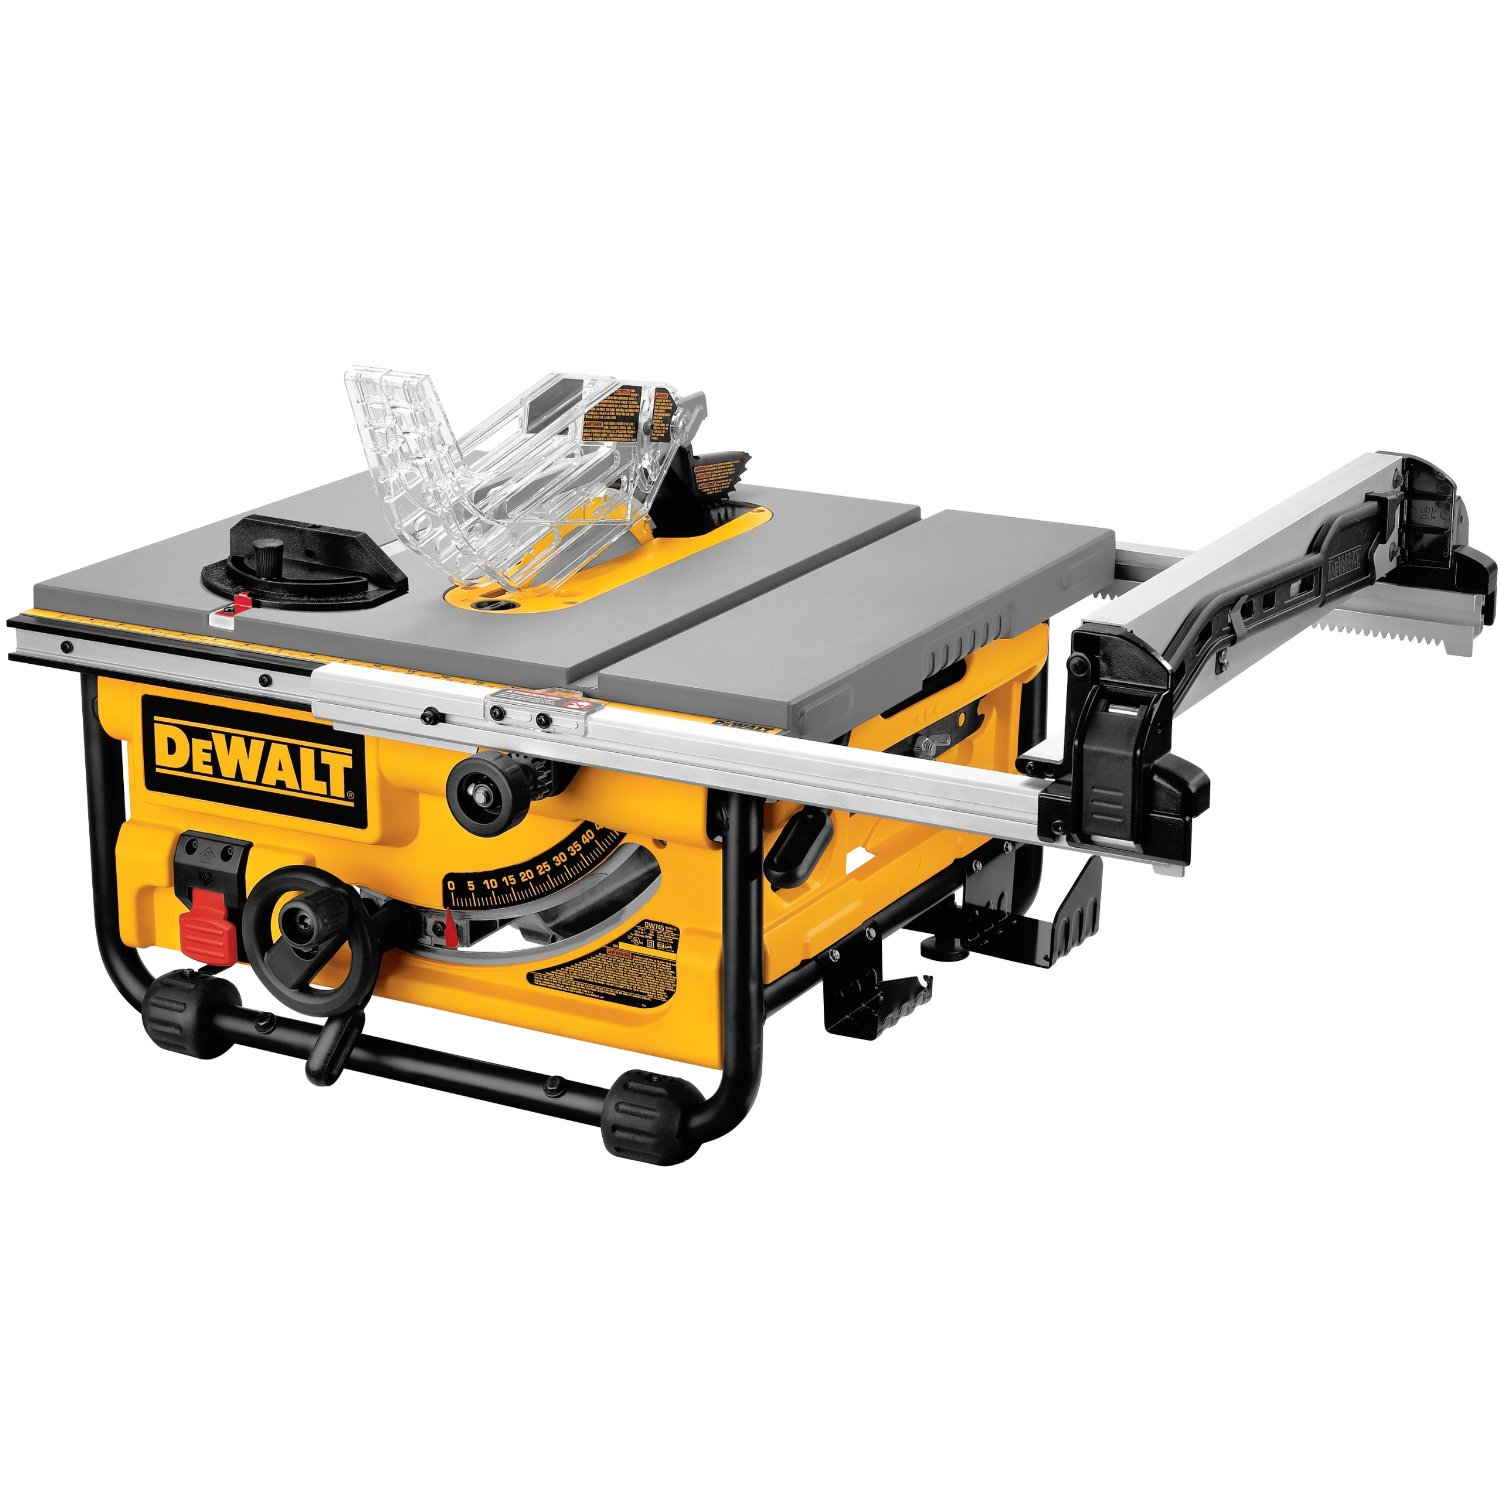 Dewalt dw745 review table saw central dewalt dw745 portable table saws greentooth Gallery